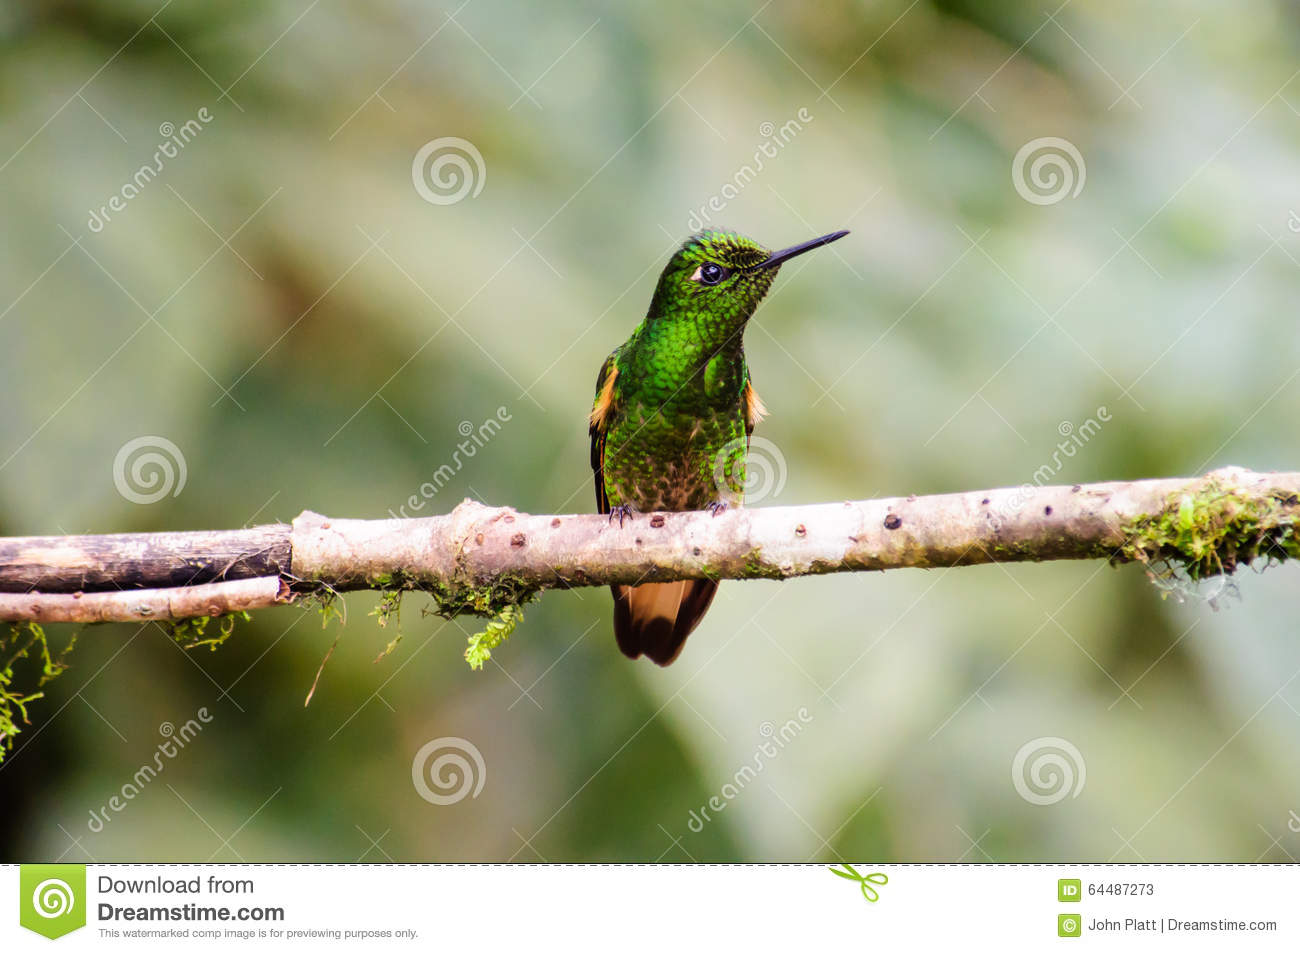 A Copper rumped Hummingbird resting on a branch